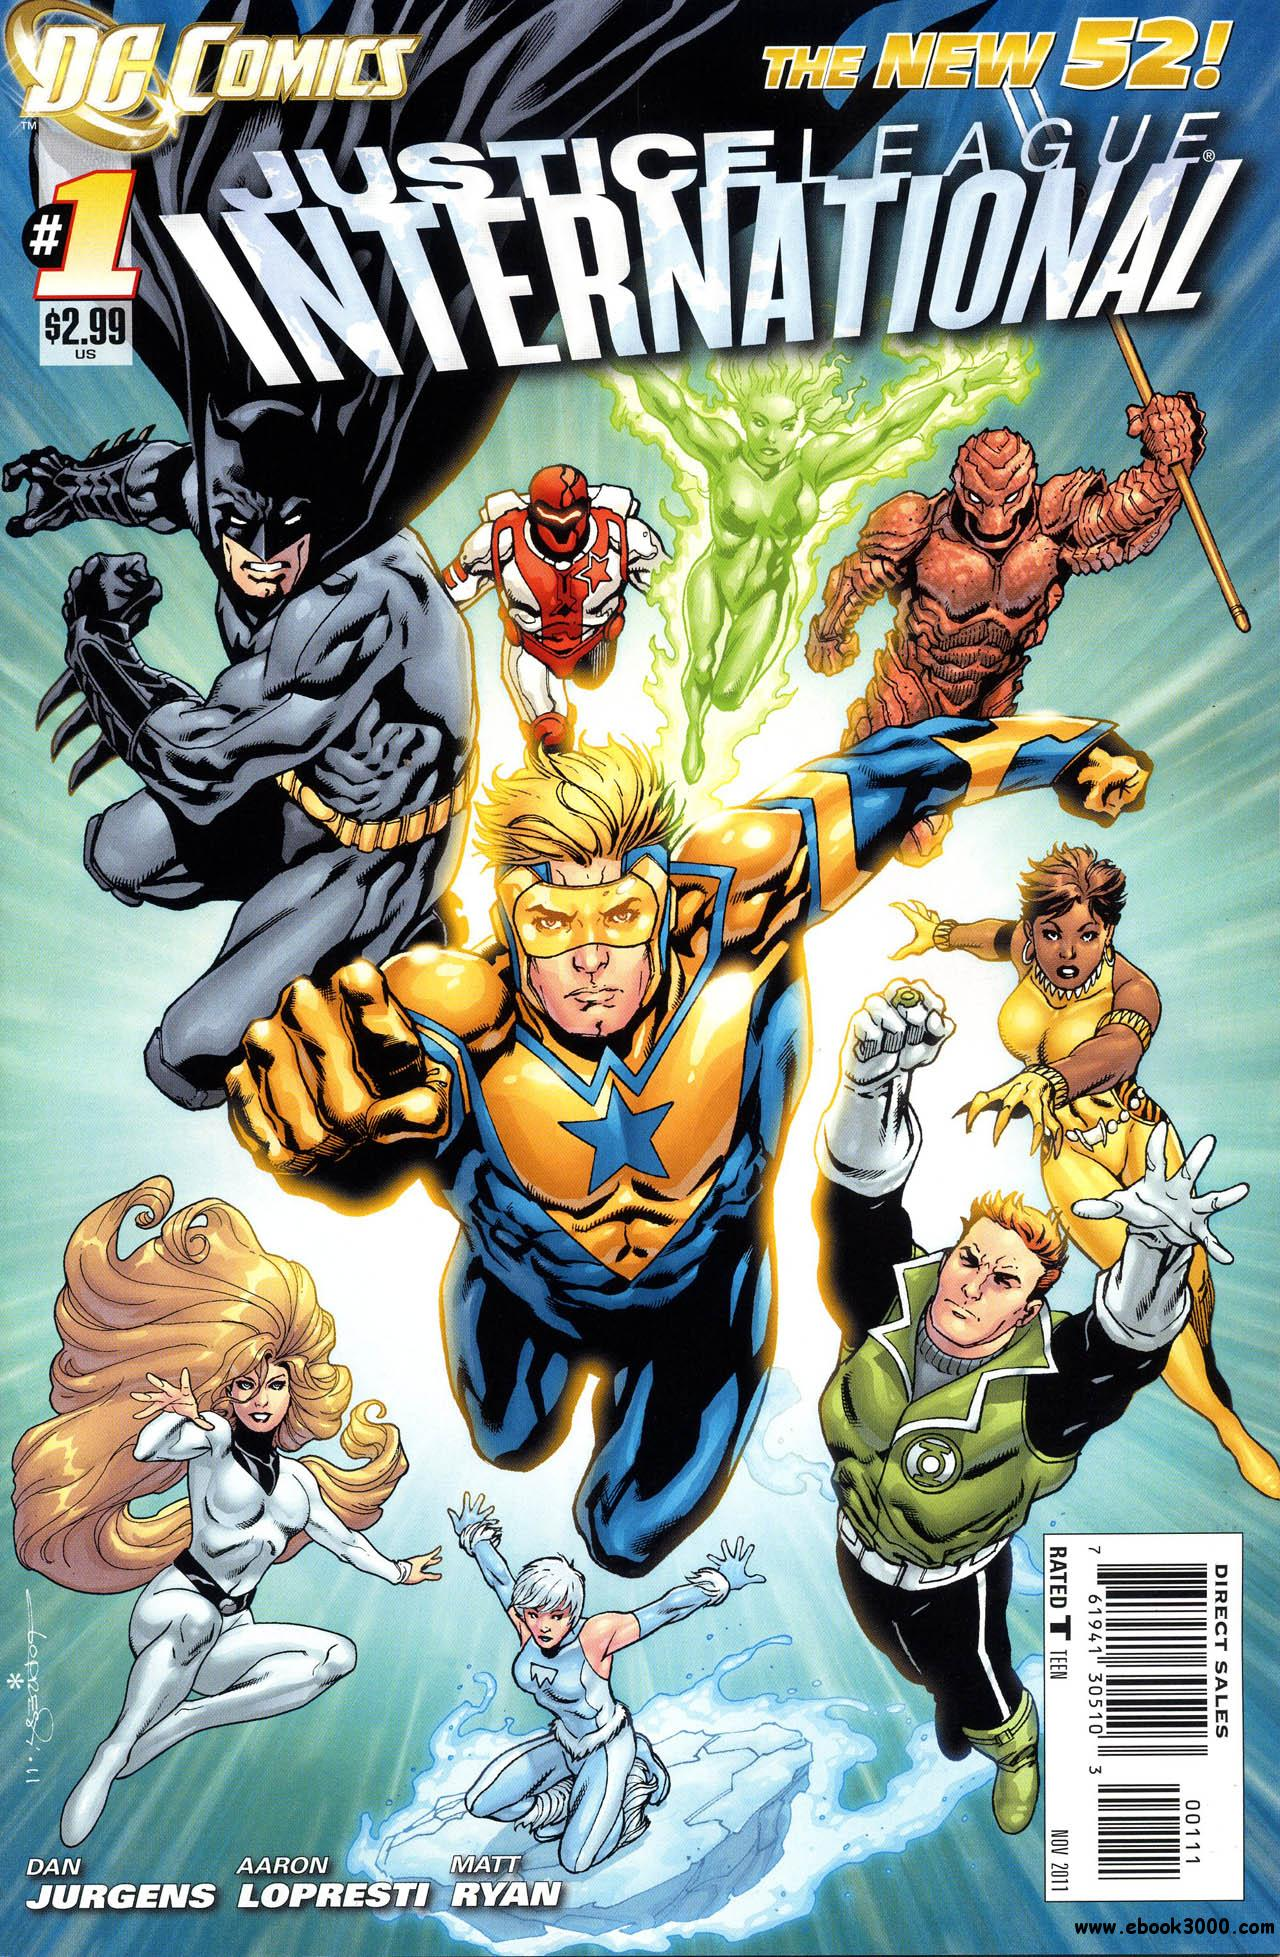 Justice League International #1 (2011) free download